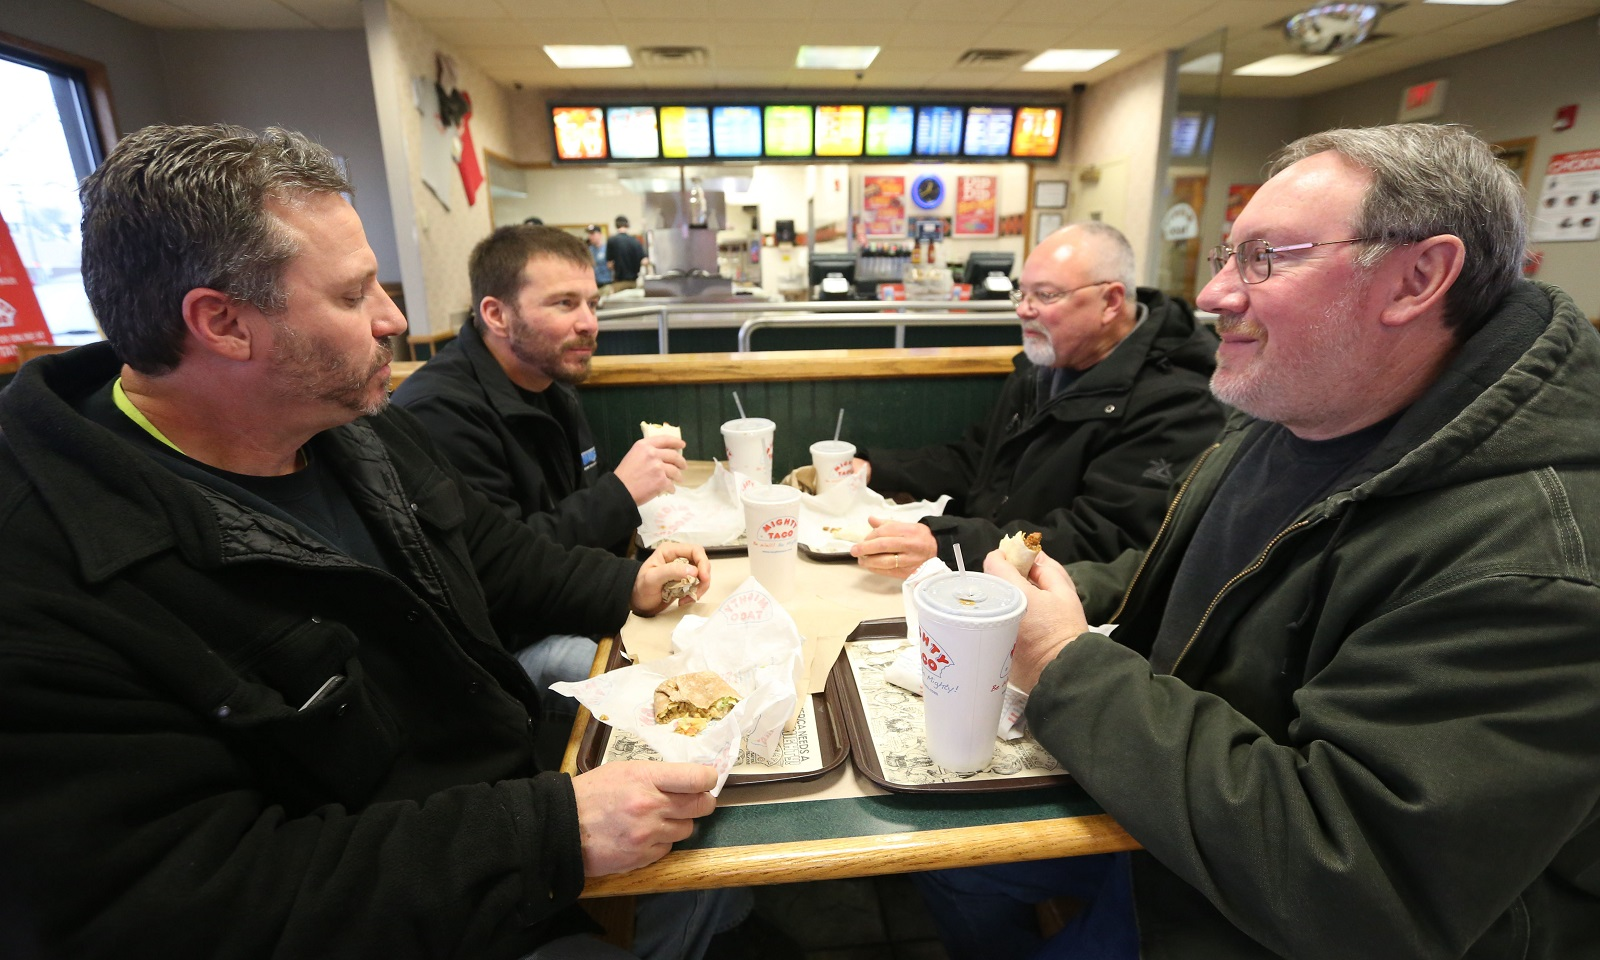 Co-workers have lunch together at the Sheridan Drive Mighty Taco. From left are Chris Gates, Pete Gruenthaner, Kevin Dougherty and Glen Webster.  (Sharon Cantillon/Buffalo News)